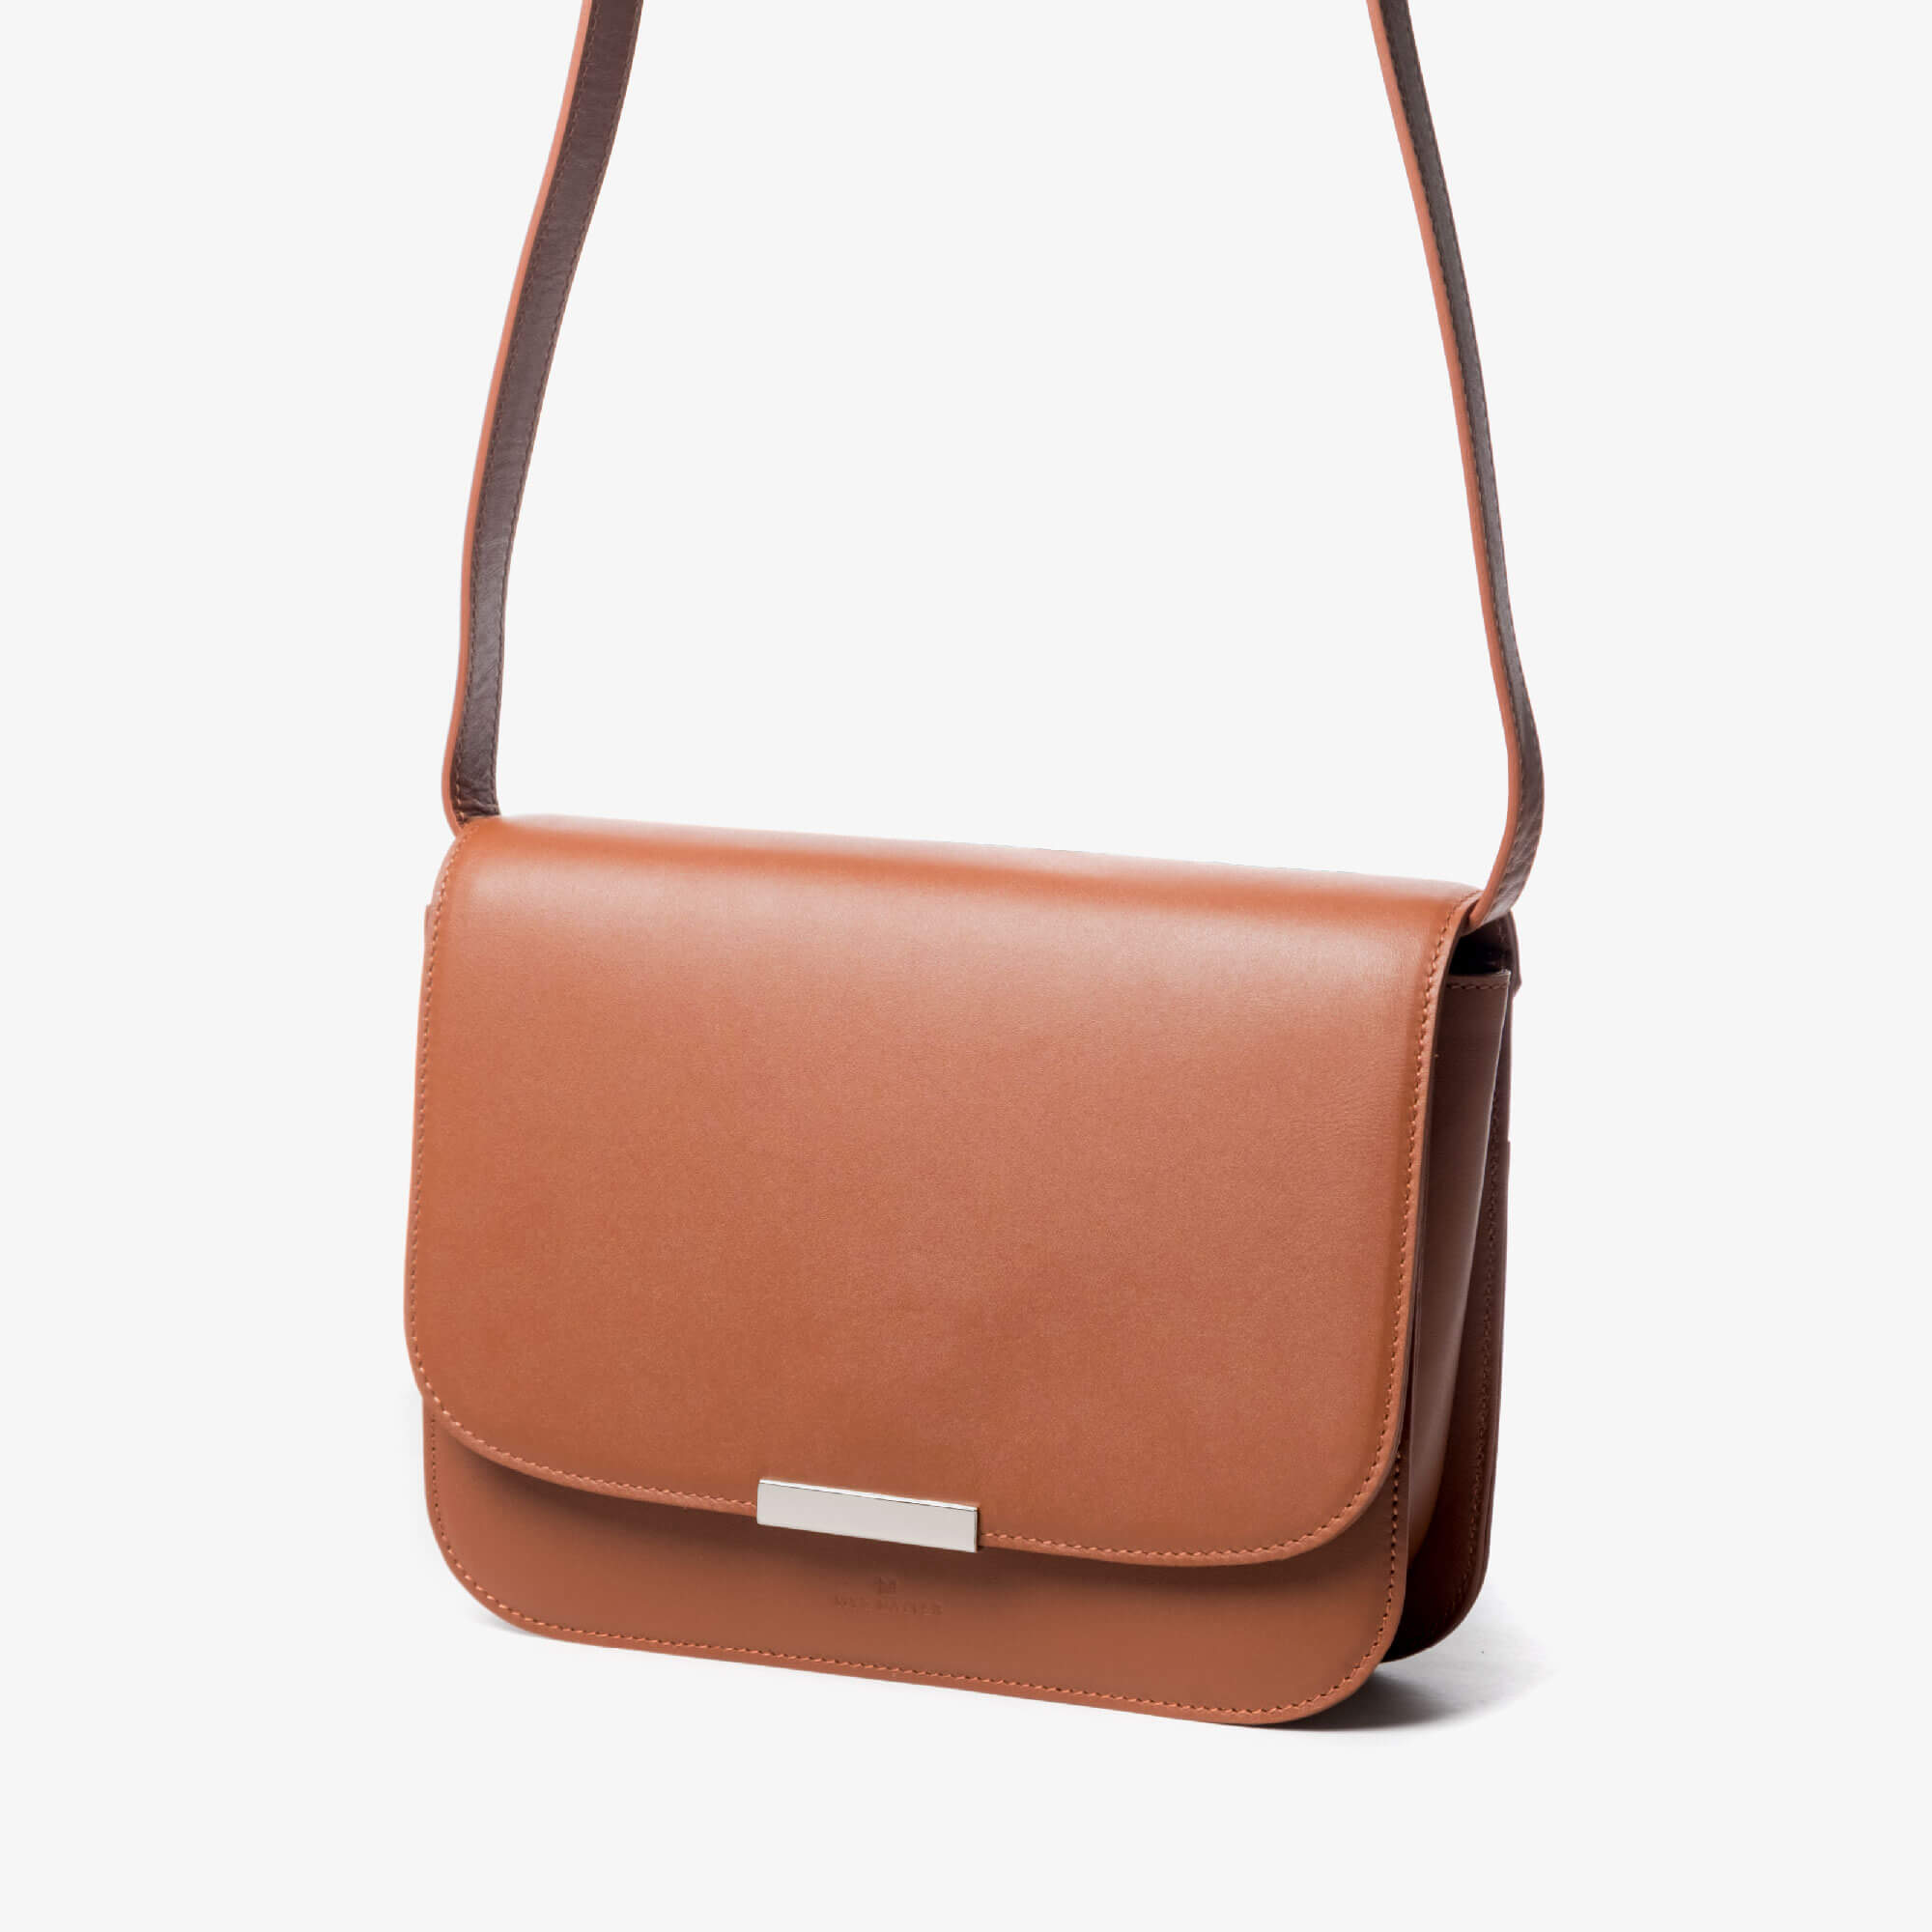 Minimal Crossbody Leather Bag Cinncamon Ally - WYE MATTER official ... 5fcf8298be58